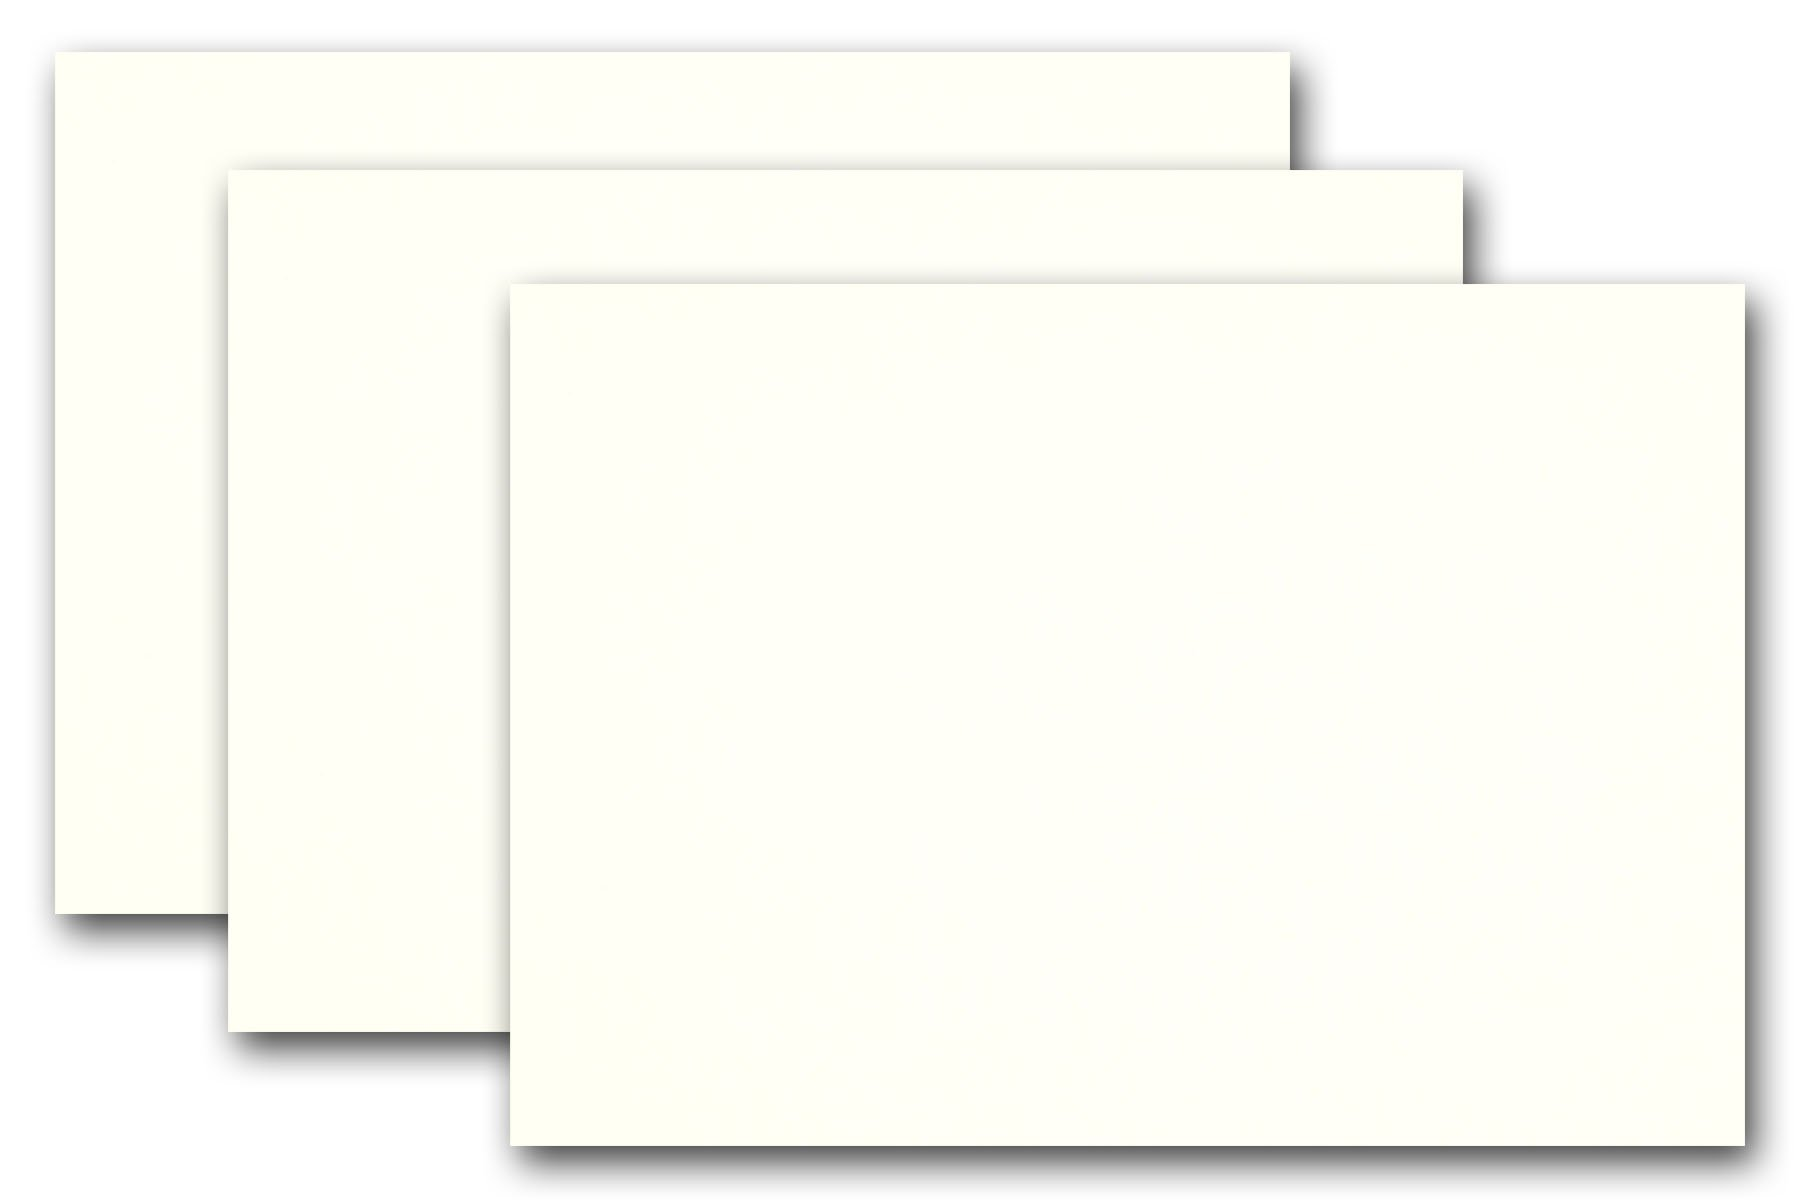 Premium Colored Blank 5x7 Card Stock (250, Whip Cream) by CutCardStock